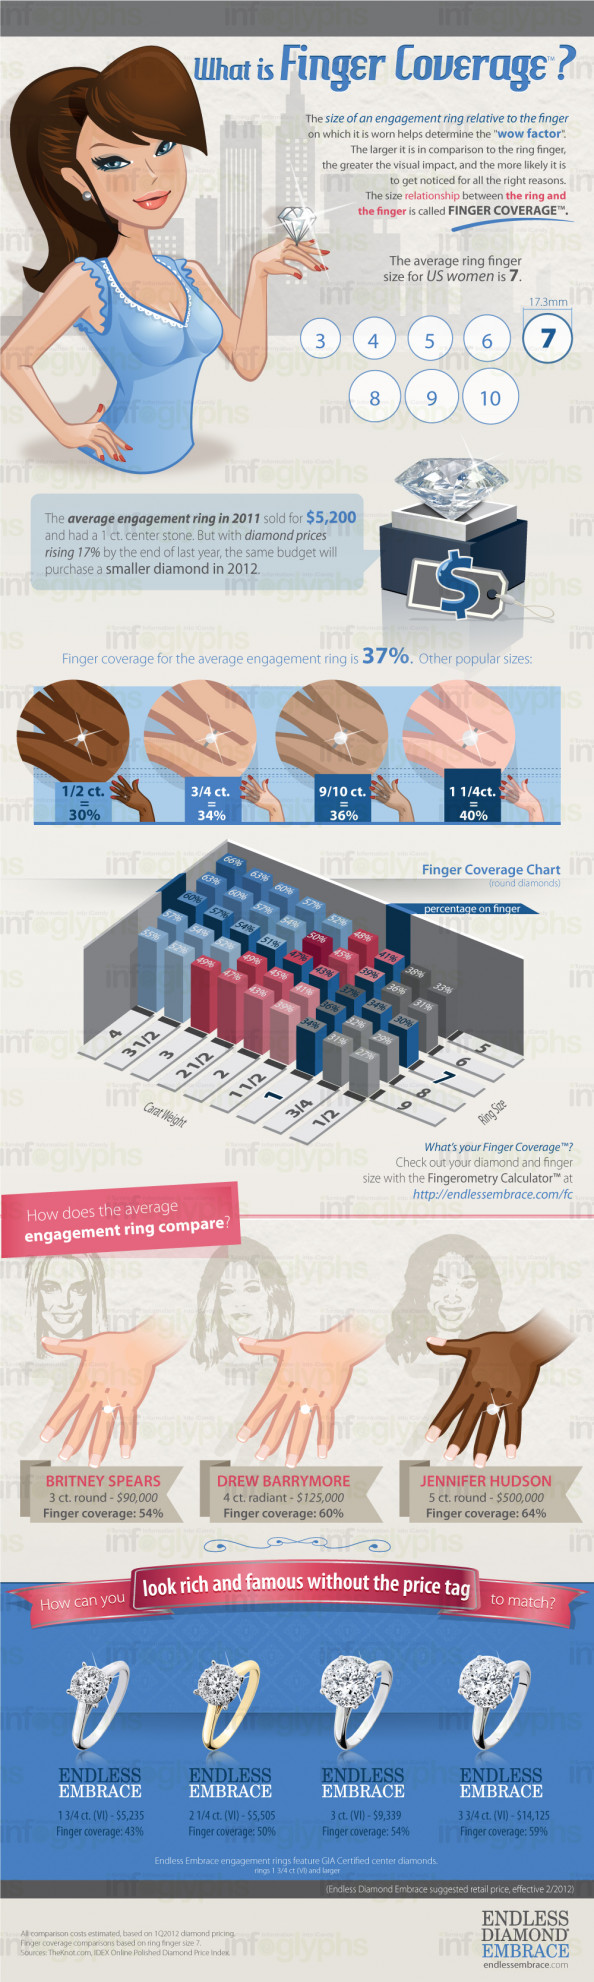 What is Finger Coverage? Infographic